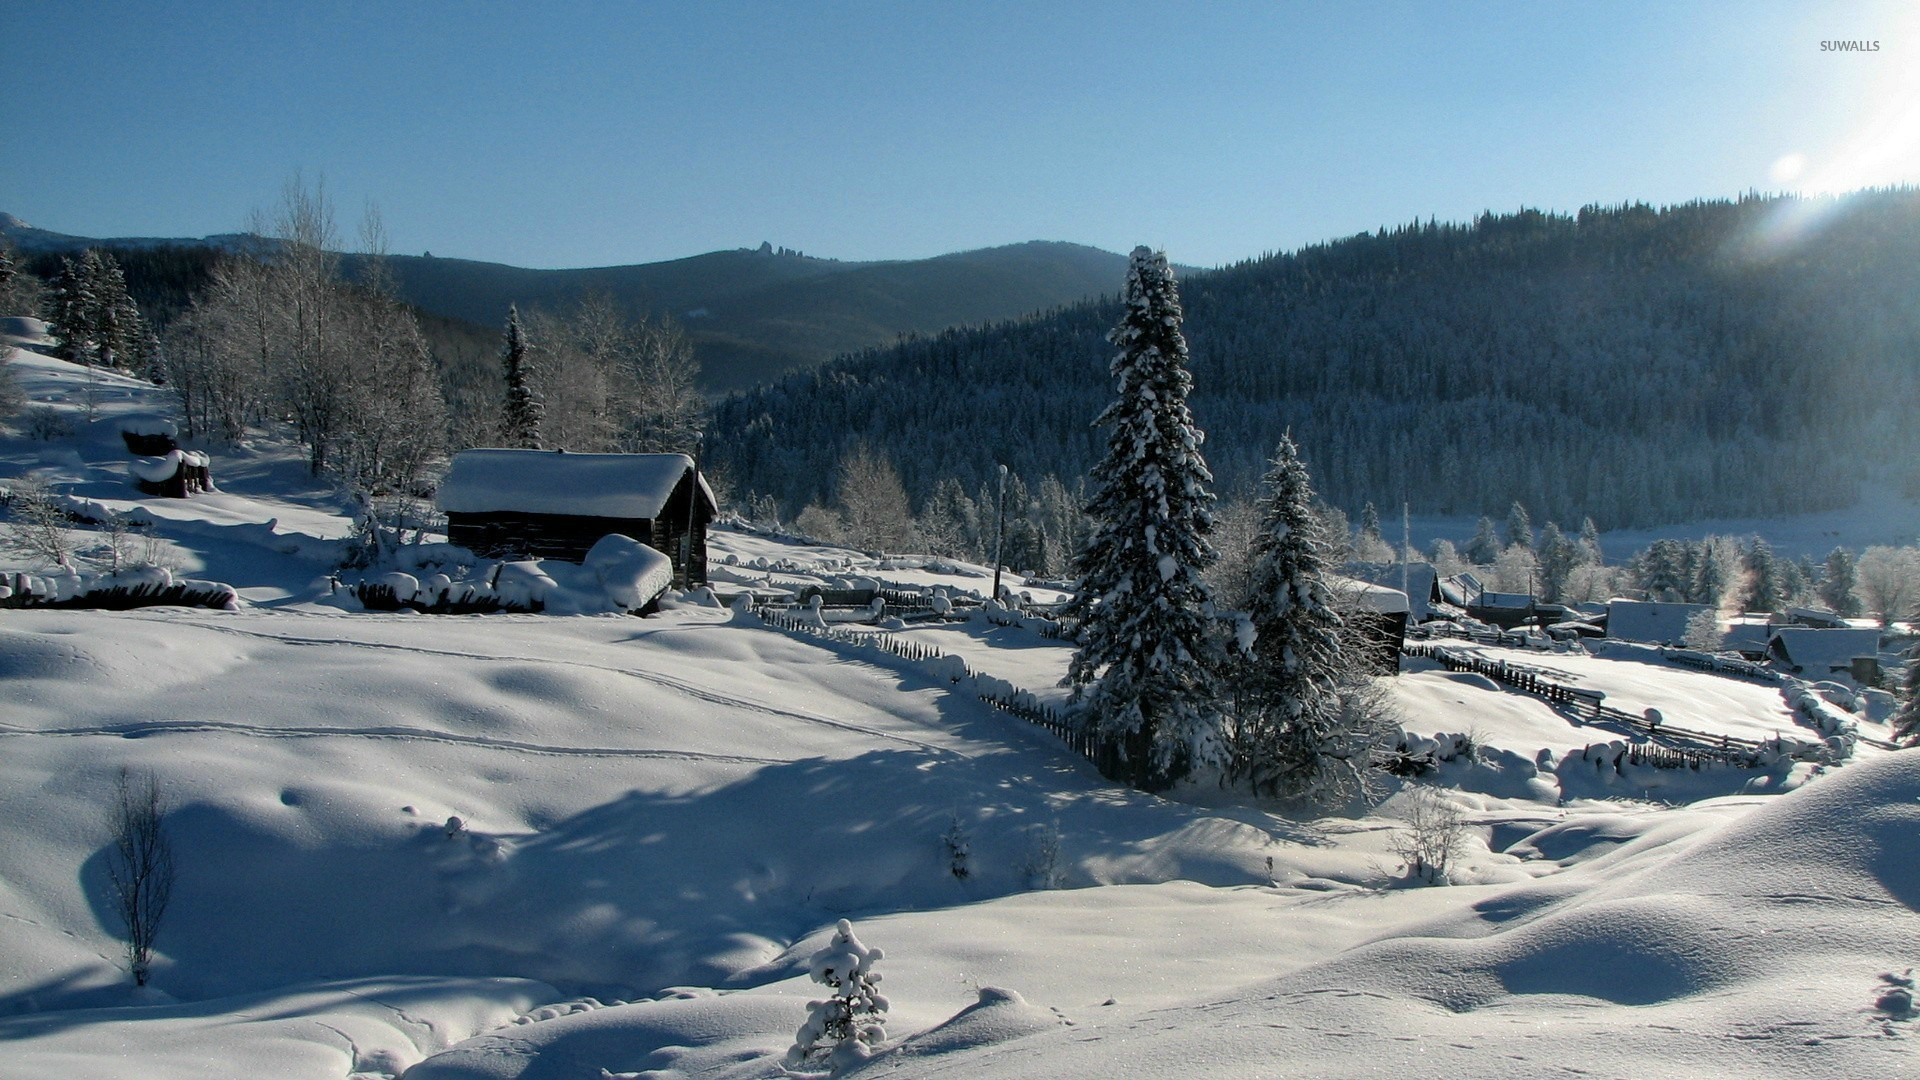 Wooden houses on a snowy mountain wallpaper jpg